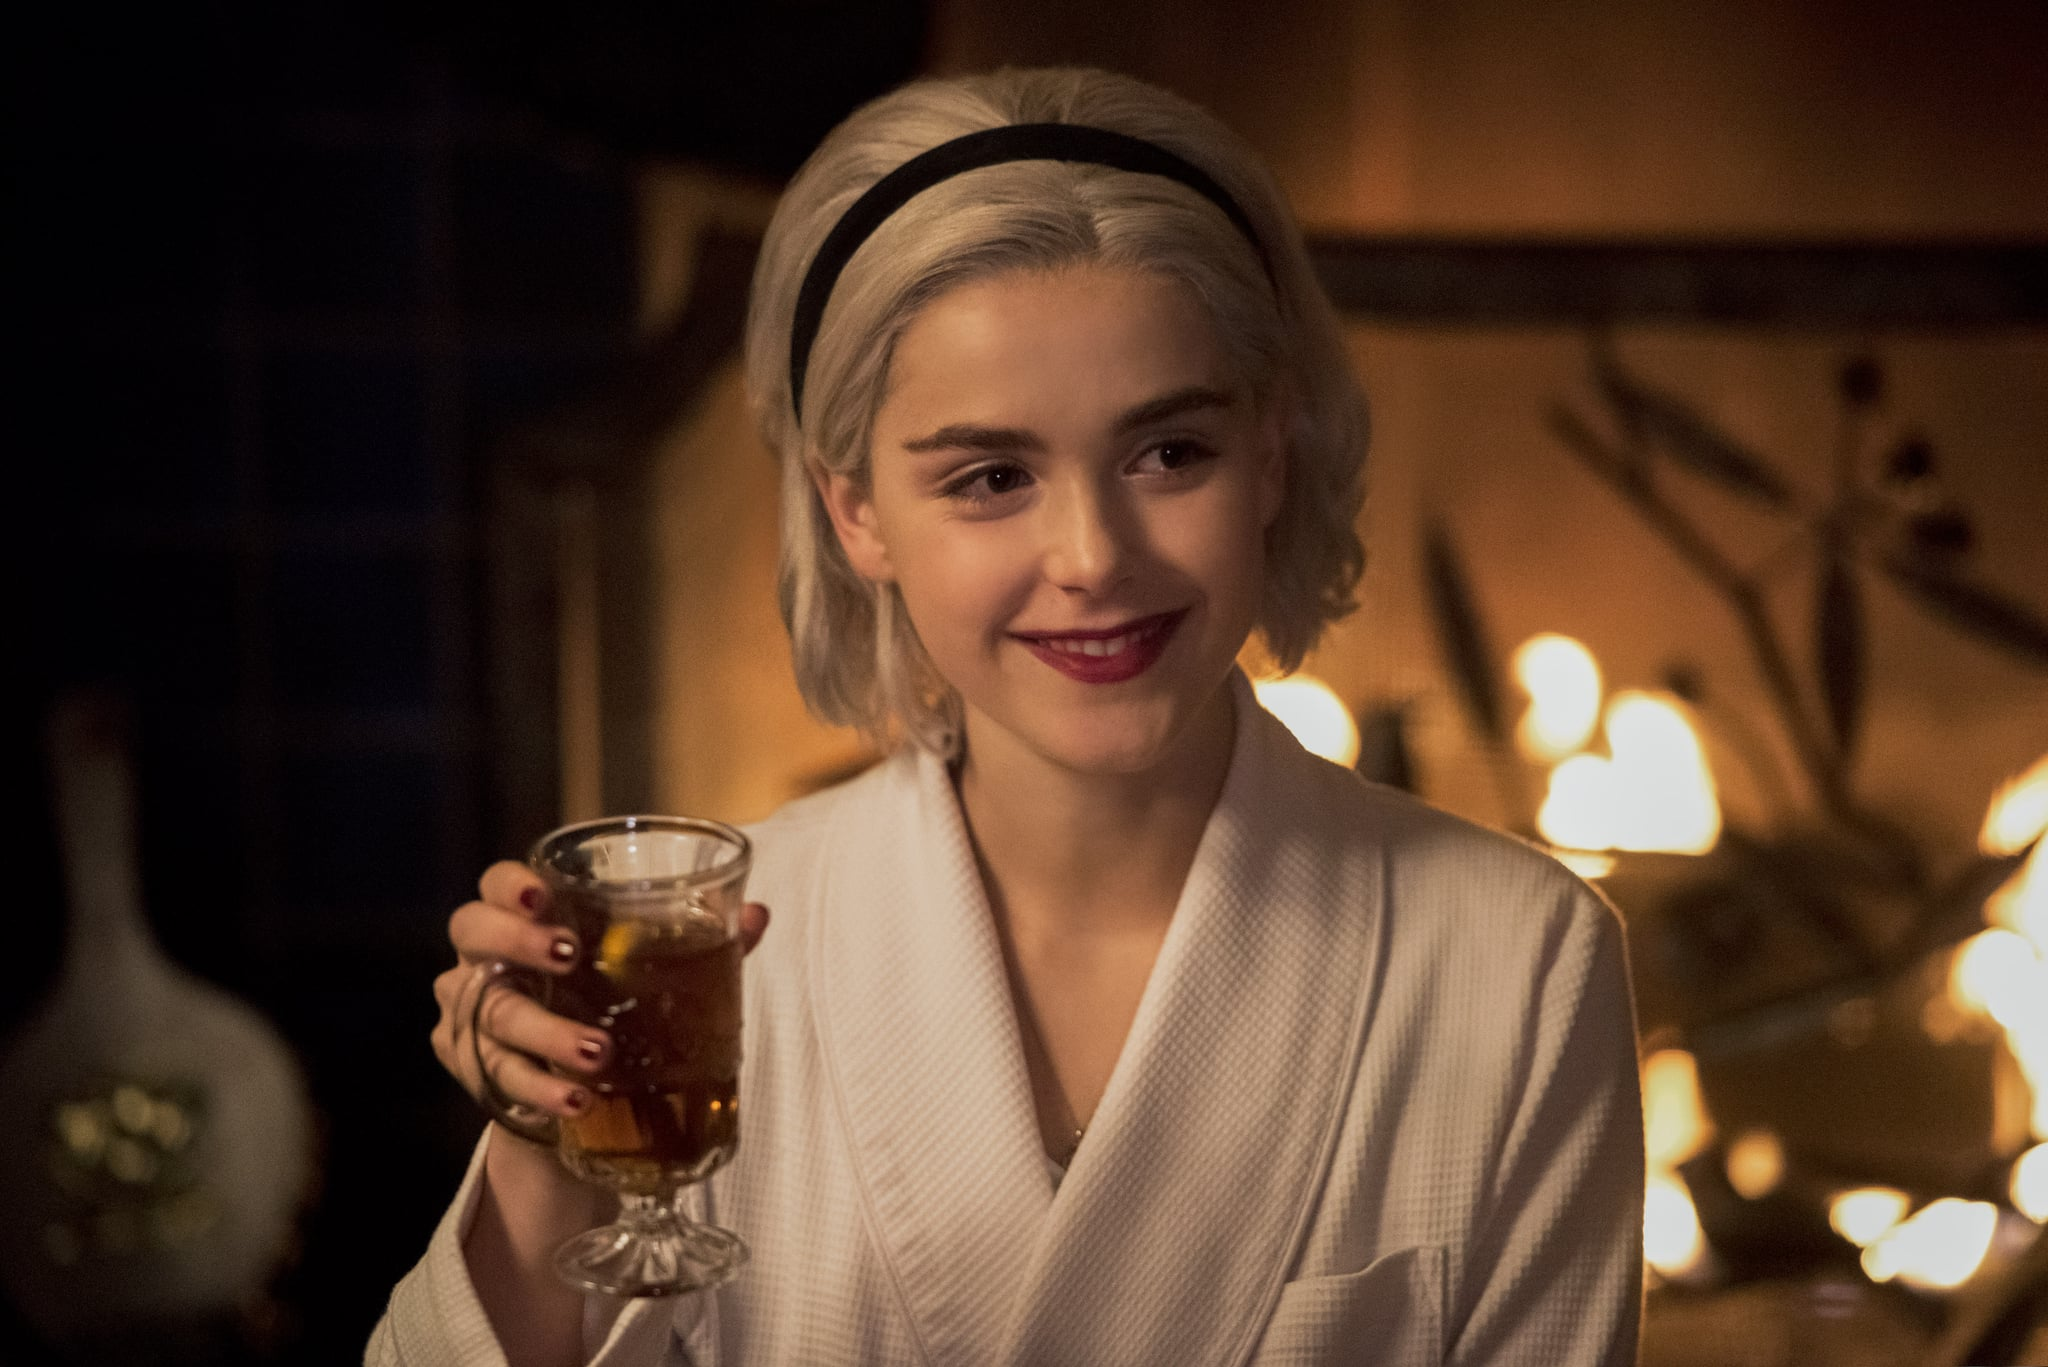 CHILLING ADVENTURES OF SABRINA, Kiernan Shipka, 'Chapter Eleven: A Midwinter's Tale', (Season 1, ep. 111, aired Dec. 14, 2018). photo: Dean Buscher / Netflix / courtesy Everett Collection